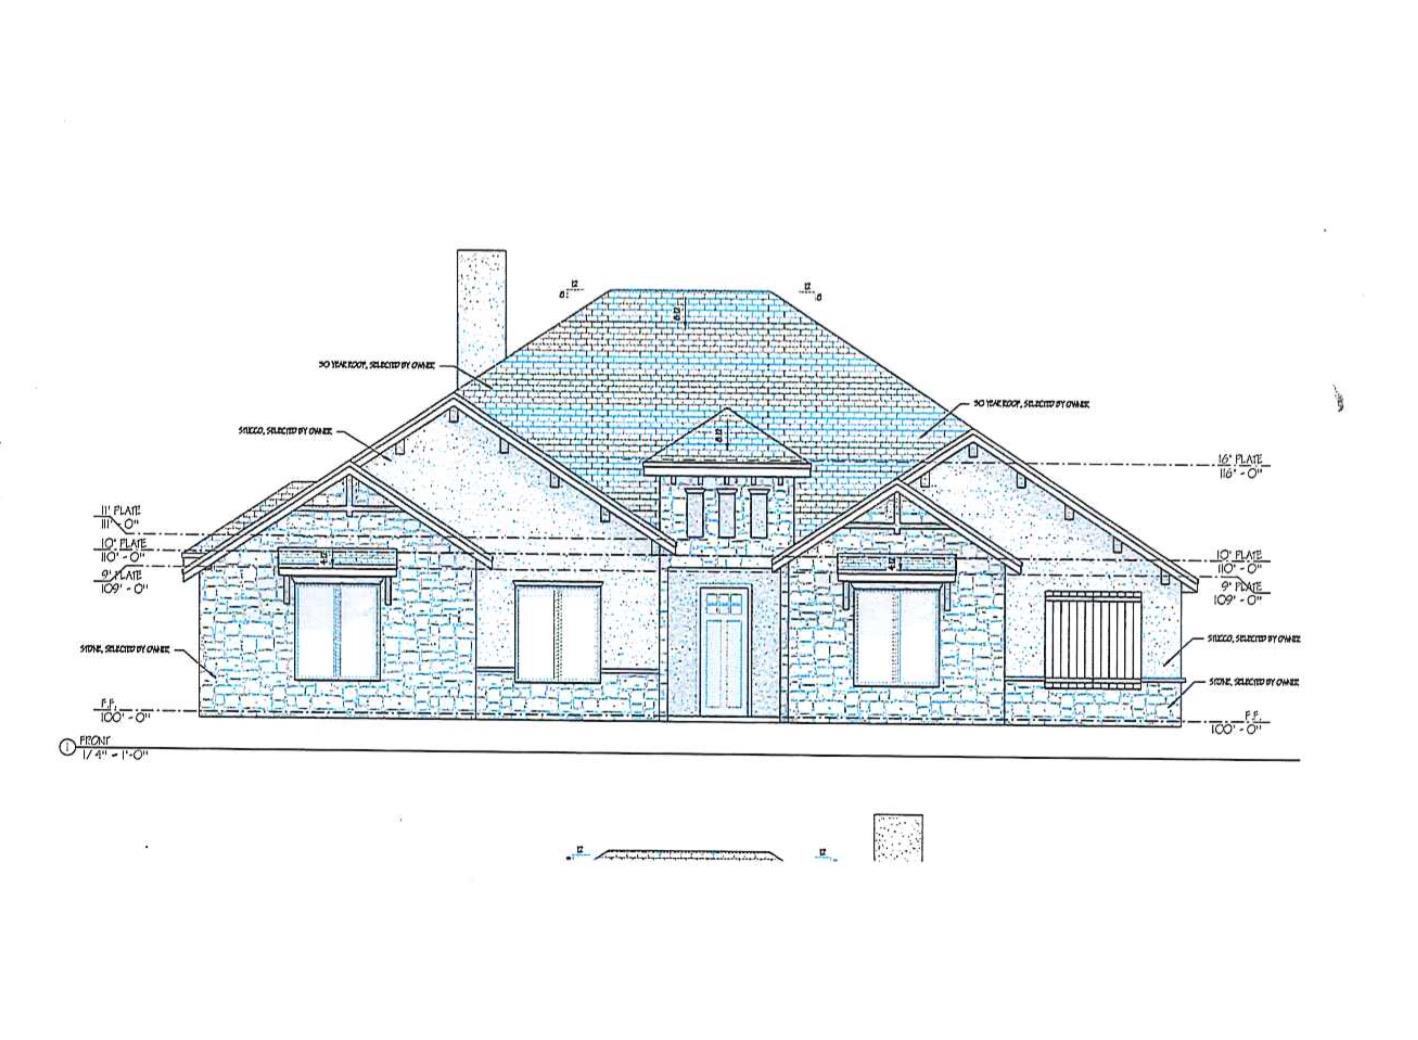 New Construction Under Way!  Home is going to be Amazing!  Home is located in New Home School District. 2432 SF .. Located on 2 Acres! Builder has just started this home in September 2019.  Home is a 3/3/3 with a Bonus Room to fit your needs as the Home Owner!  Home is just about 3 min from the school.